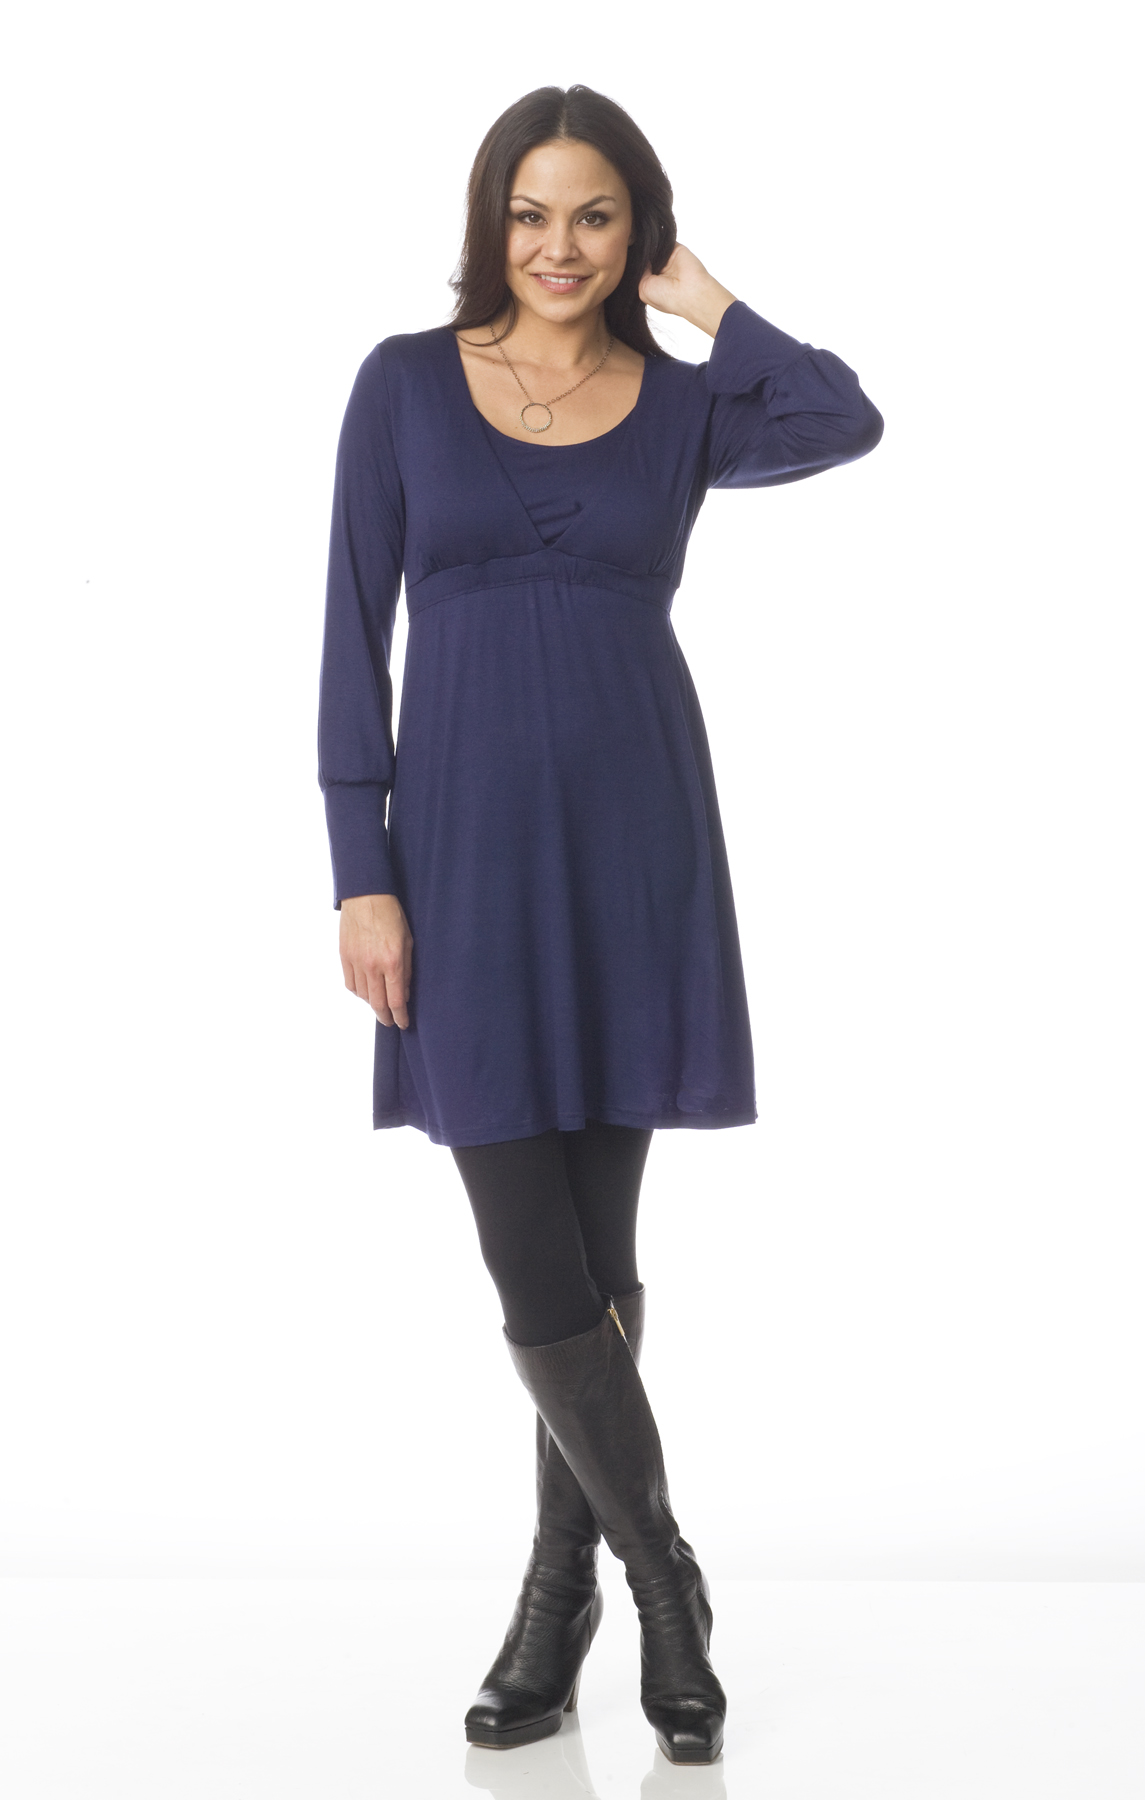 nixilu-bohemian-nursing-tunic-top-blue.jpg